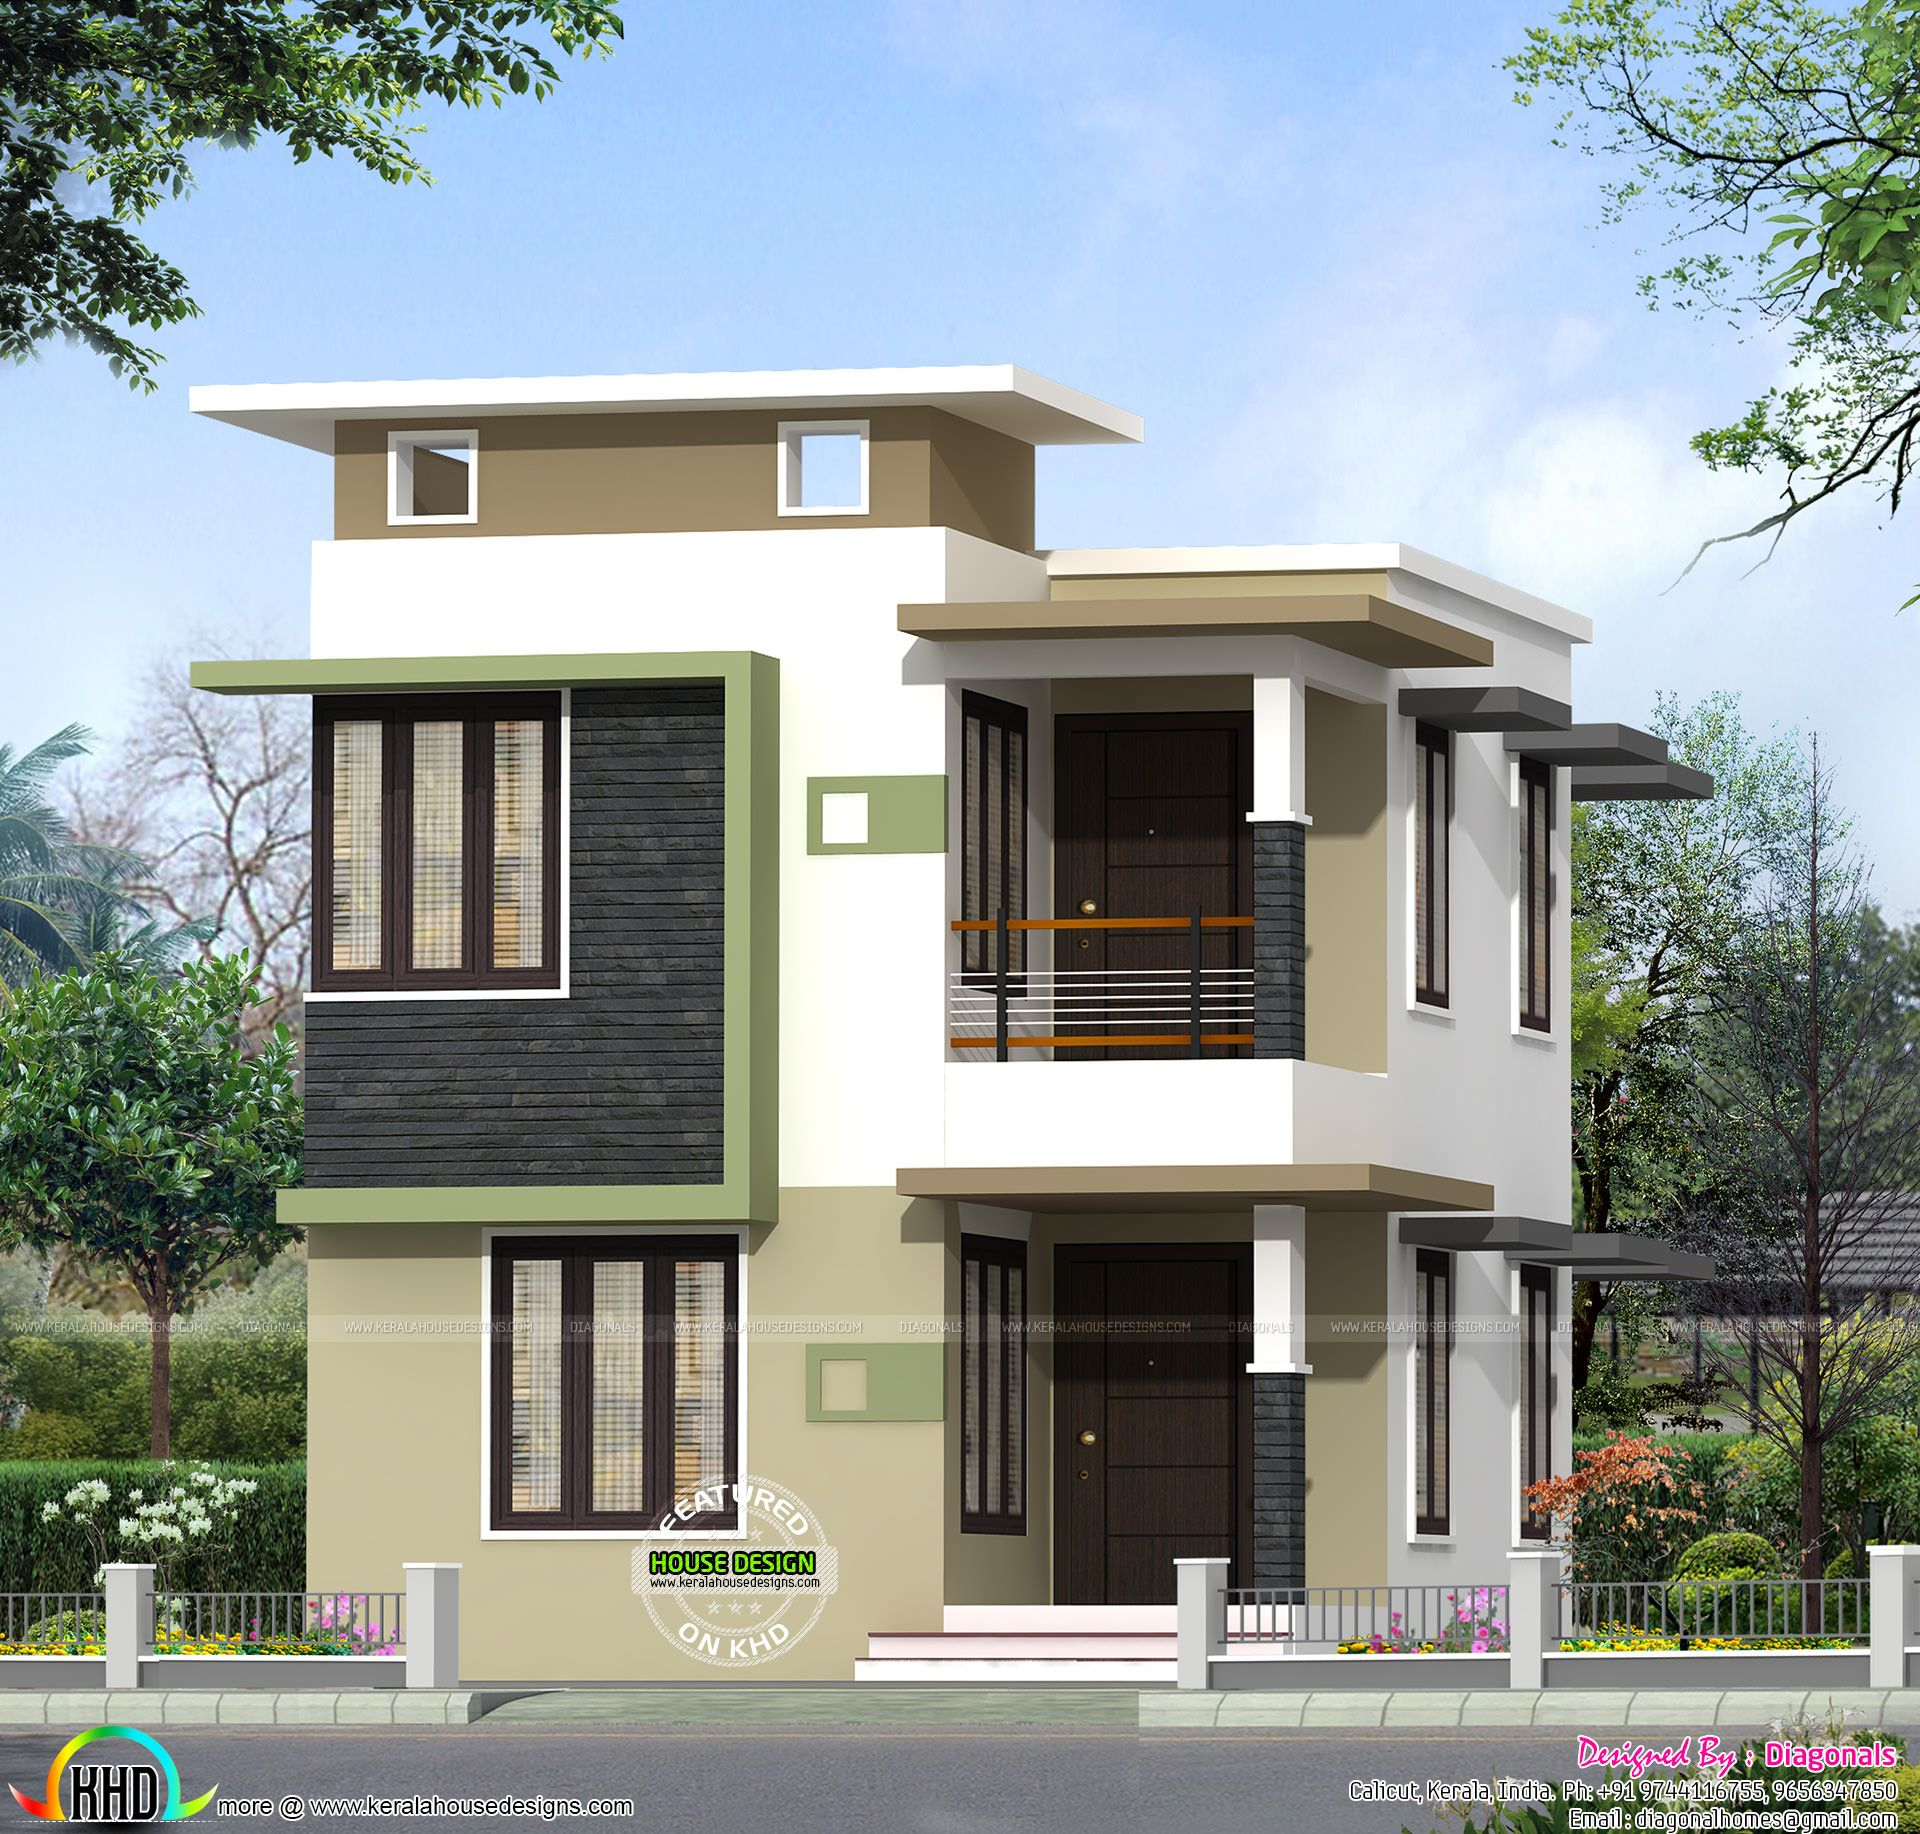 Modern Home Elevation Designs: Pin By Pradeepkumar On Design